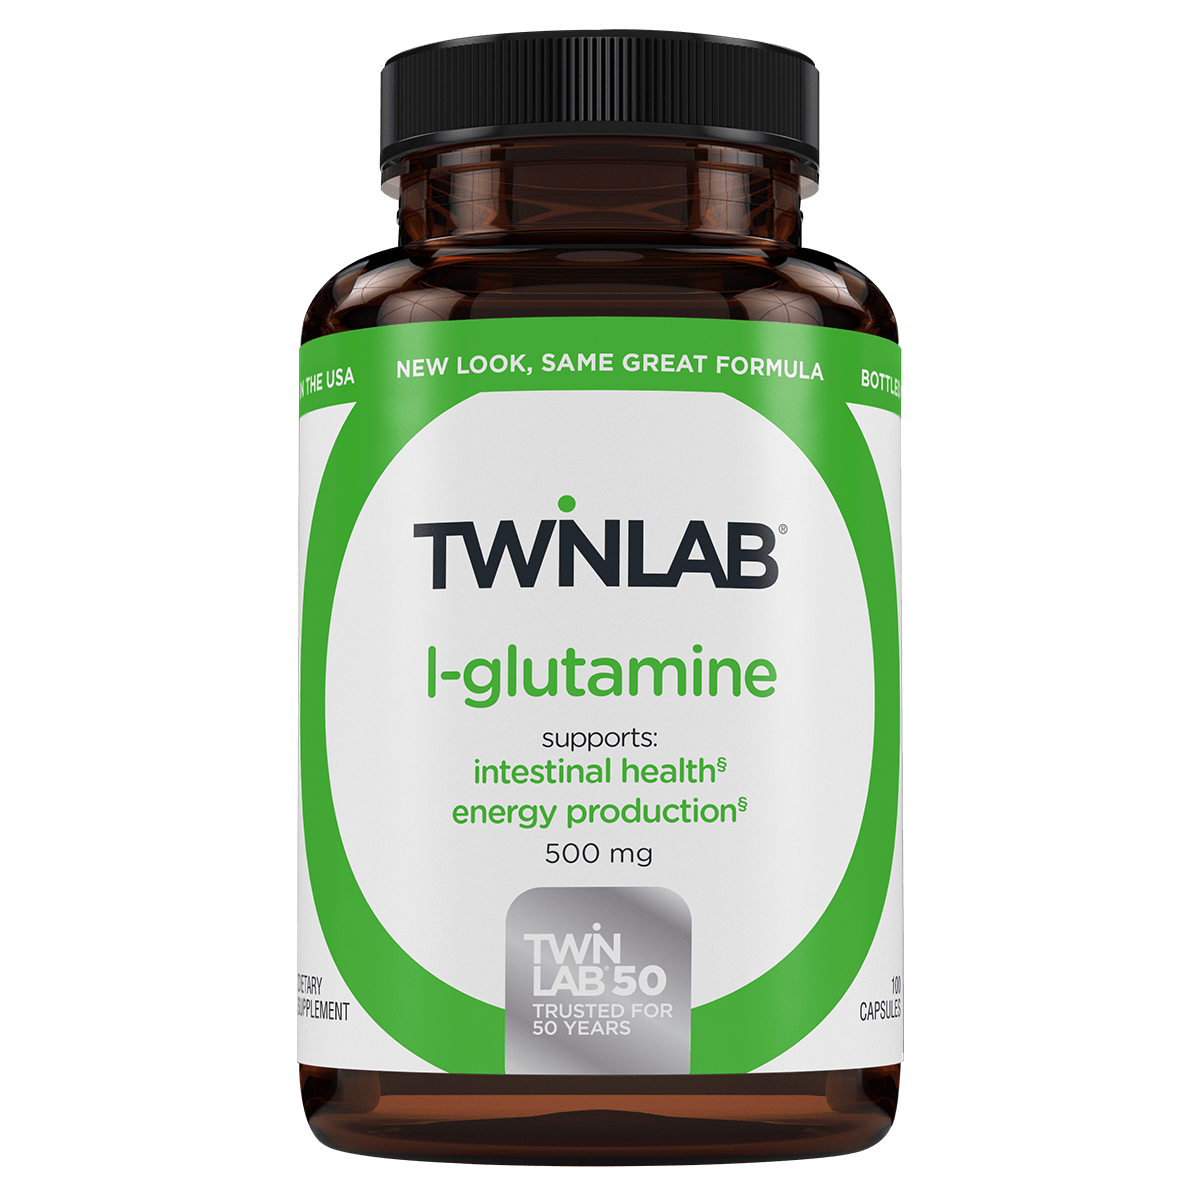 Twinlab L-Glutamine delivers 500 mg of the free form amino acid l-glutamine that supports intestinal health and energy production.